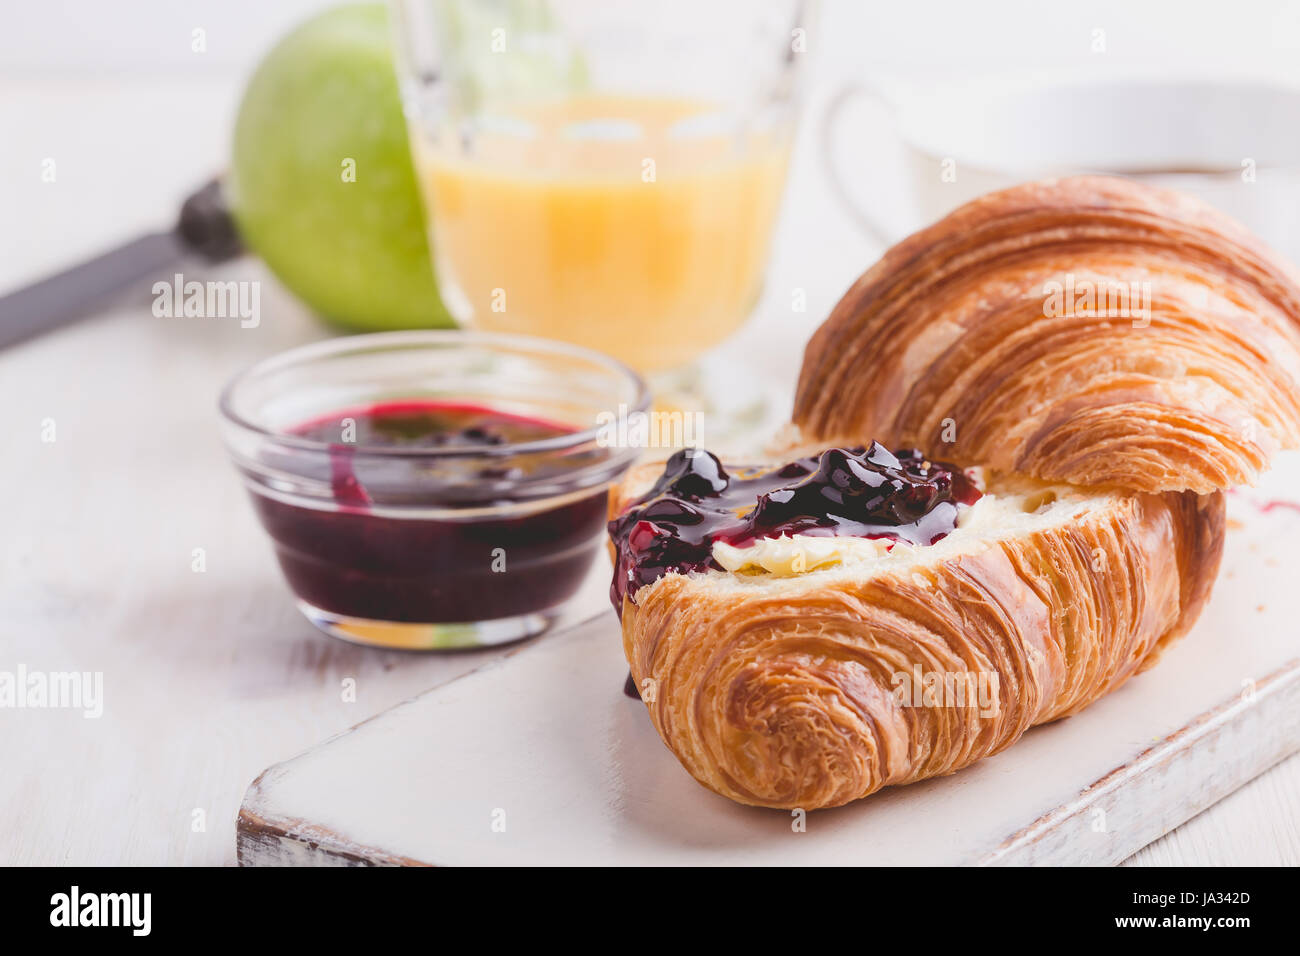 Breakfast on white wooden background - croissant, jam,  orange juice and coffee - Stock Image